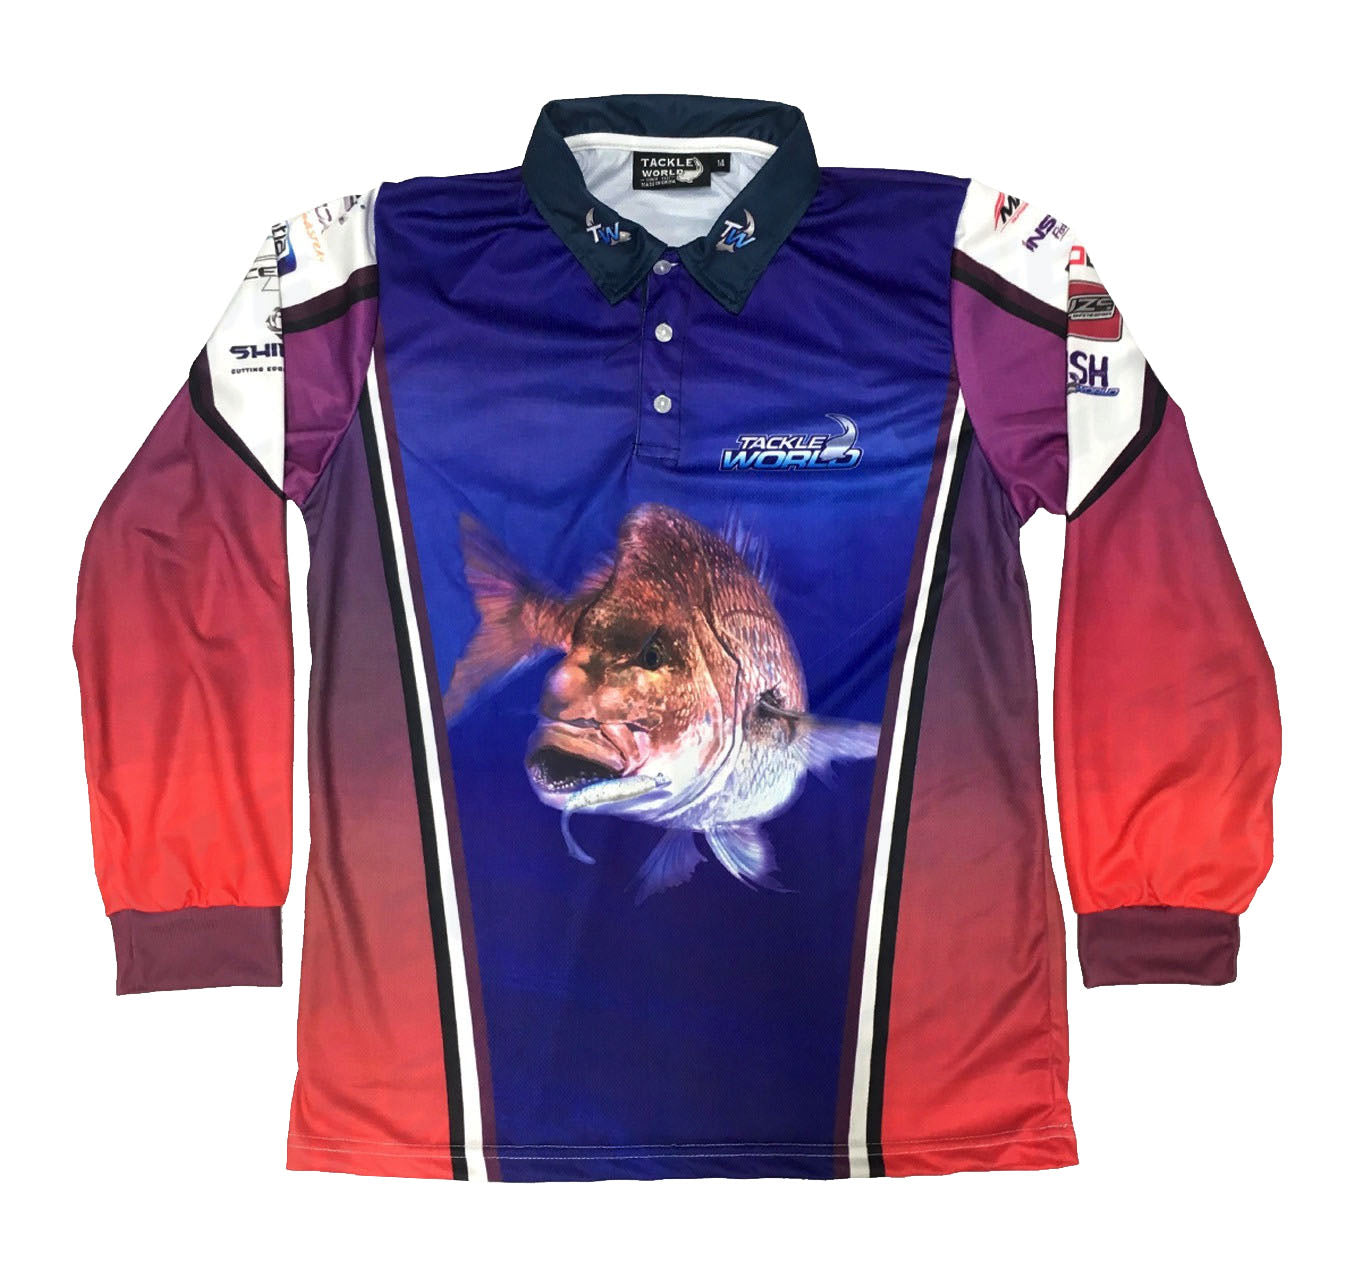 Tackle World Snapper Adult Fishing Shirts